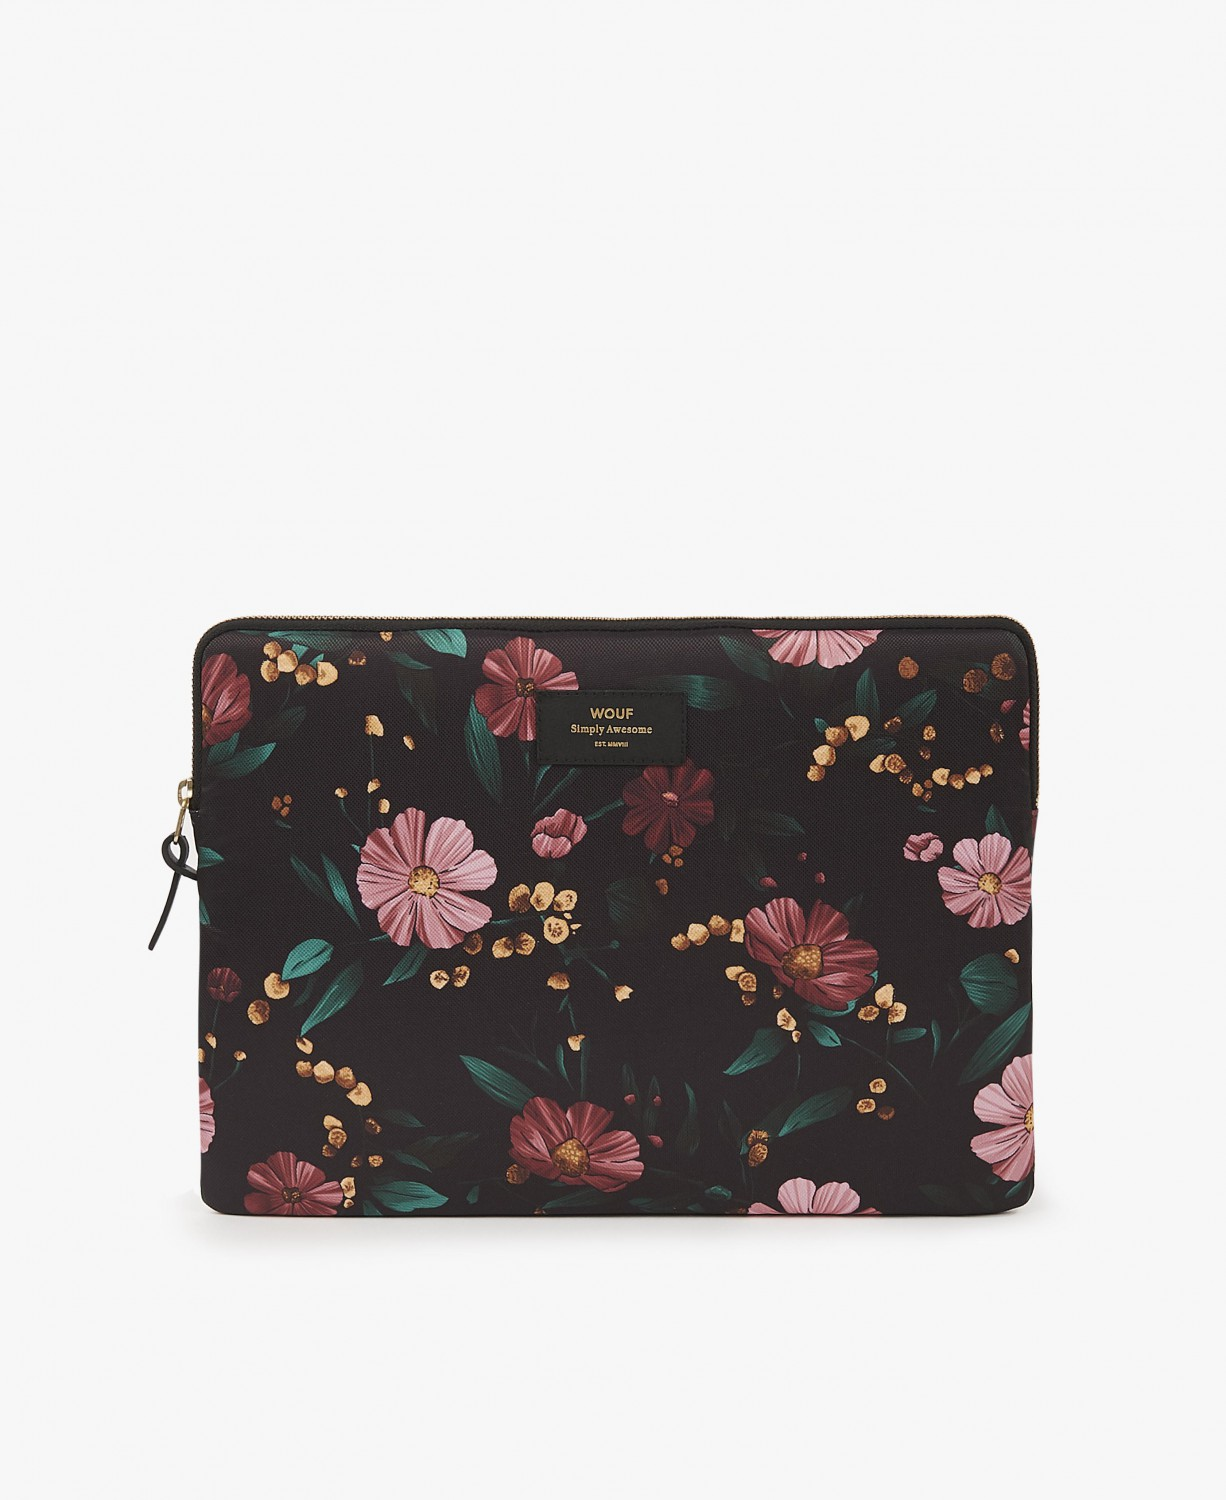 WOUF | Black Flowers Laptop sleeve 15 inches